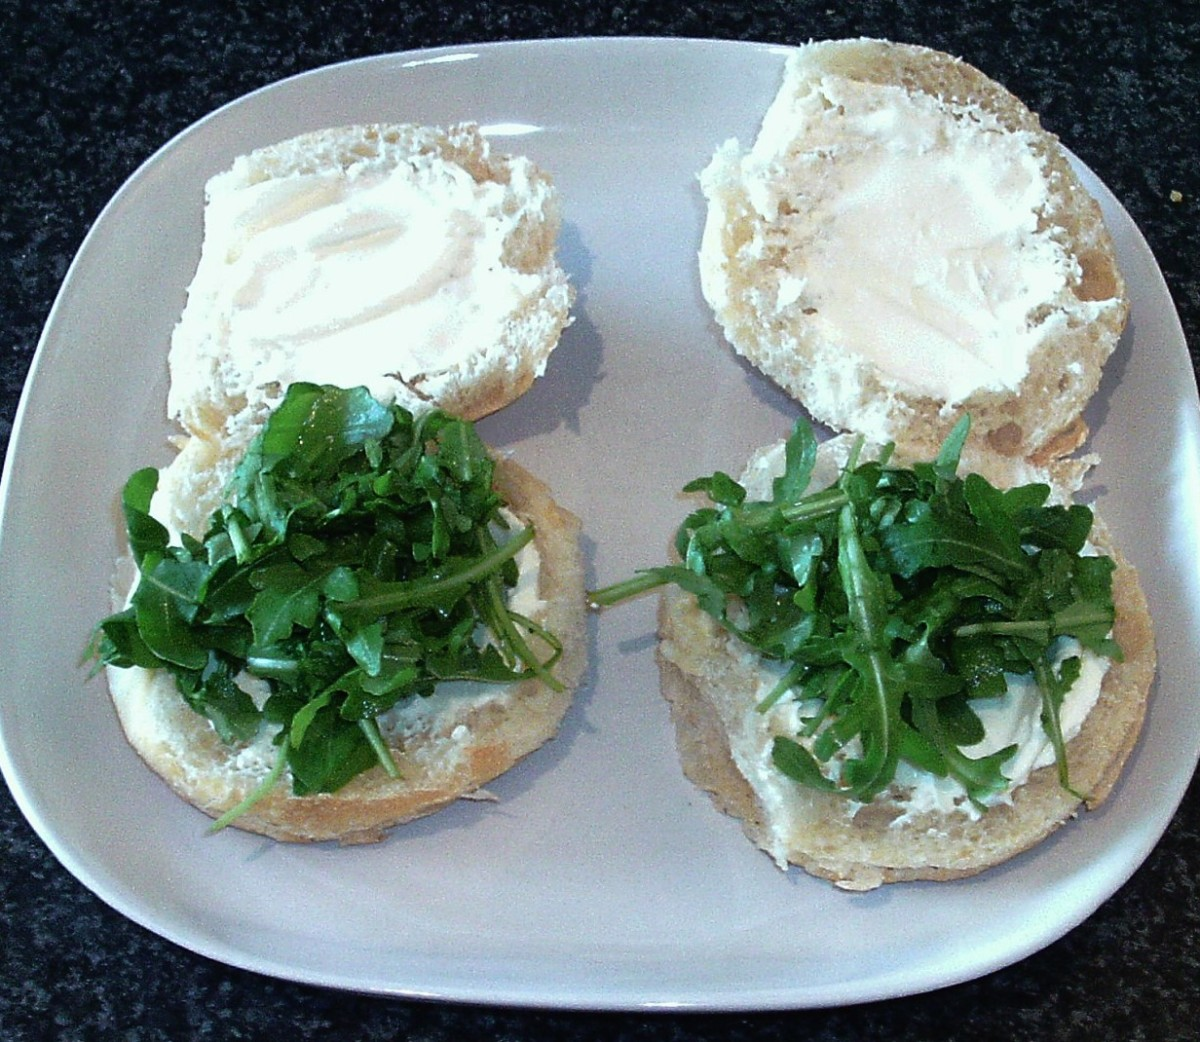 Rocket leaves laid on cream cheese spread roll bases